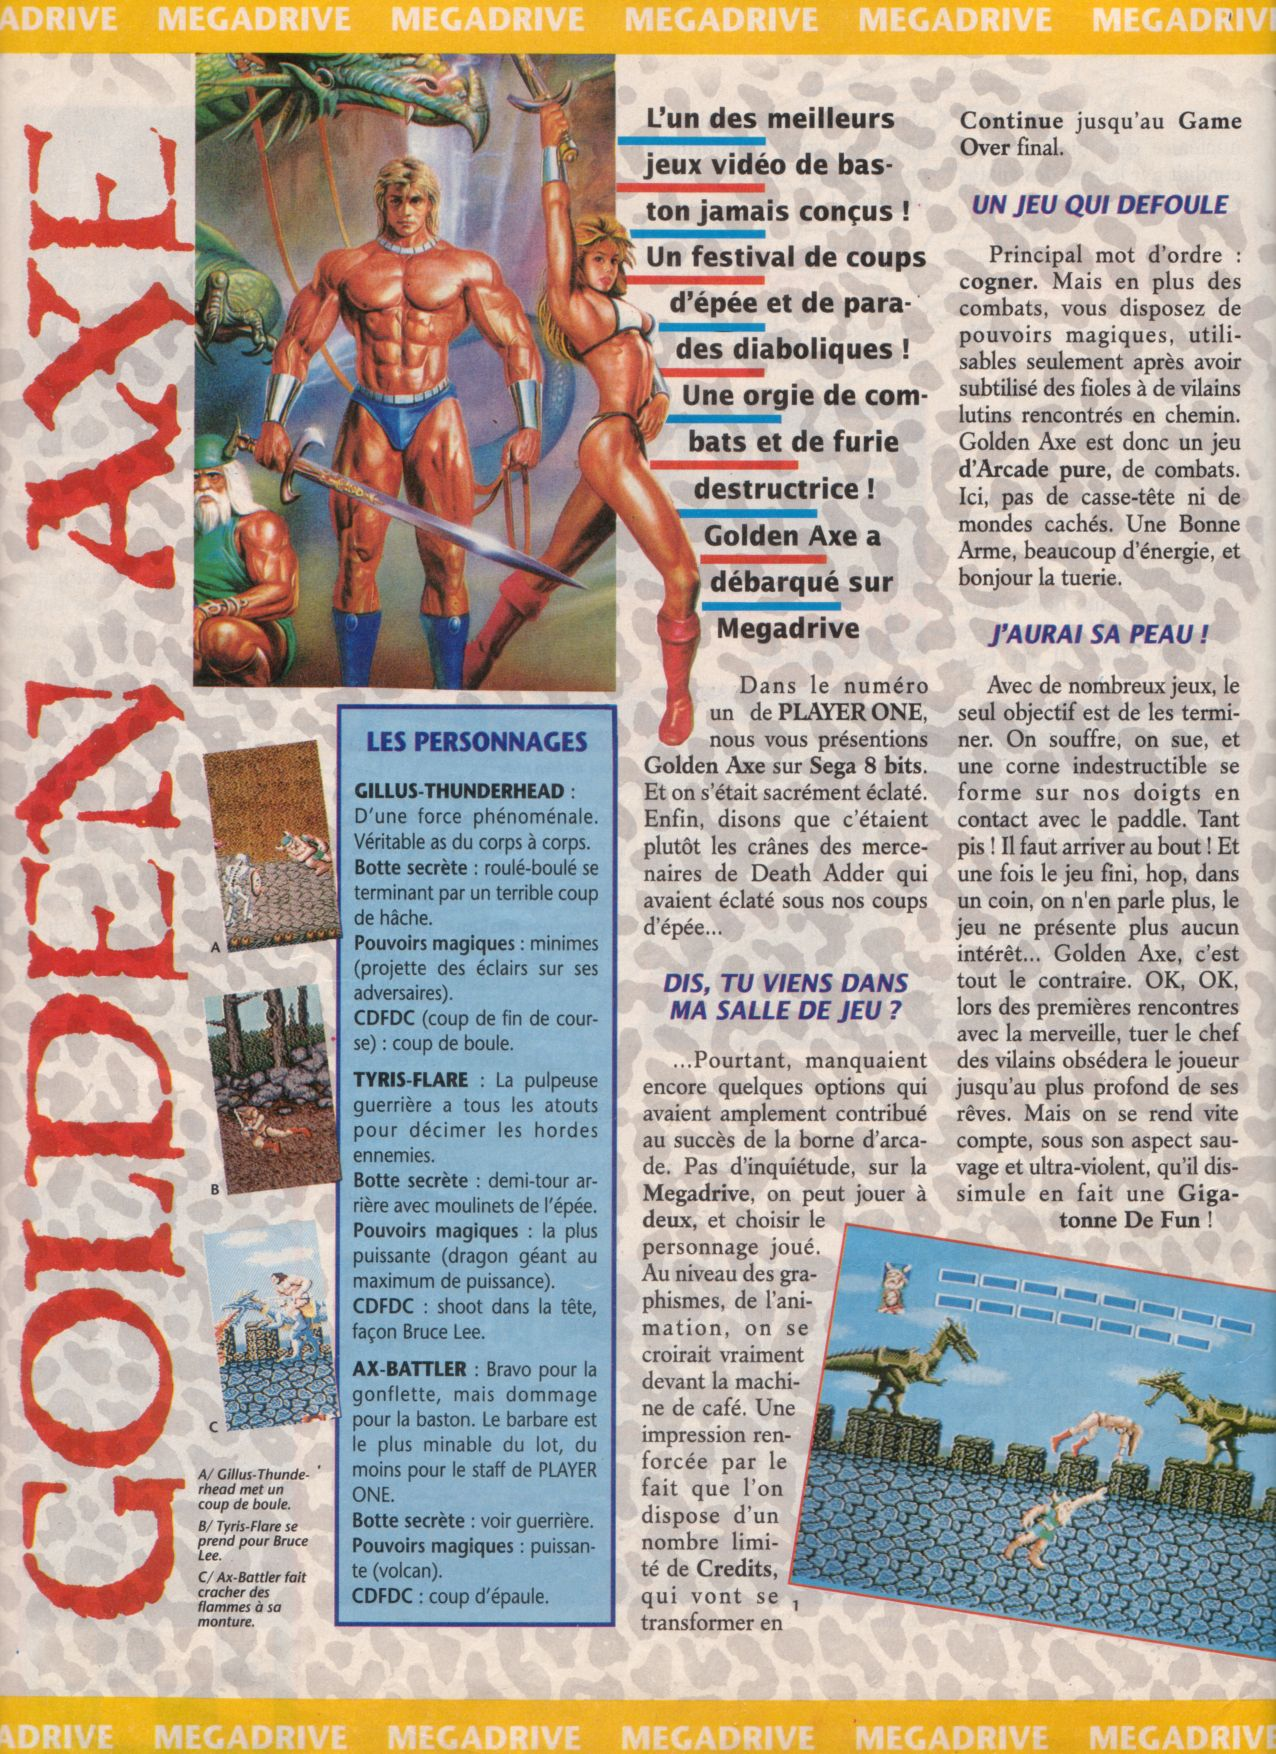 [Jeux] GOLDEN AXE (Mega Drive) 1989. Player%20One%20003%20-%20Page%20038%20(1990-11)